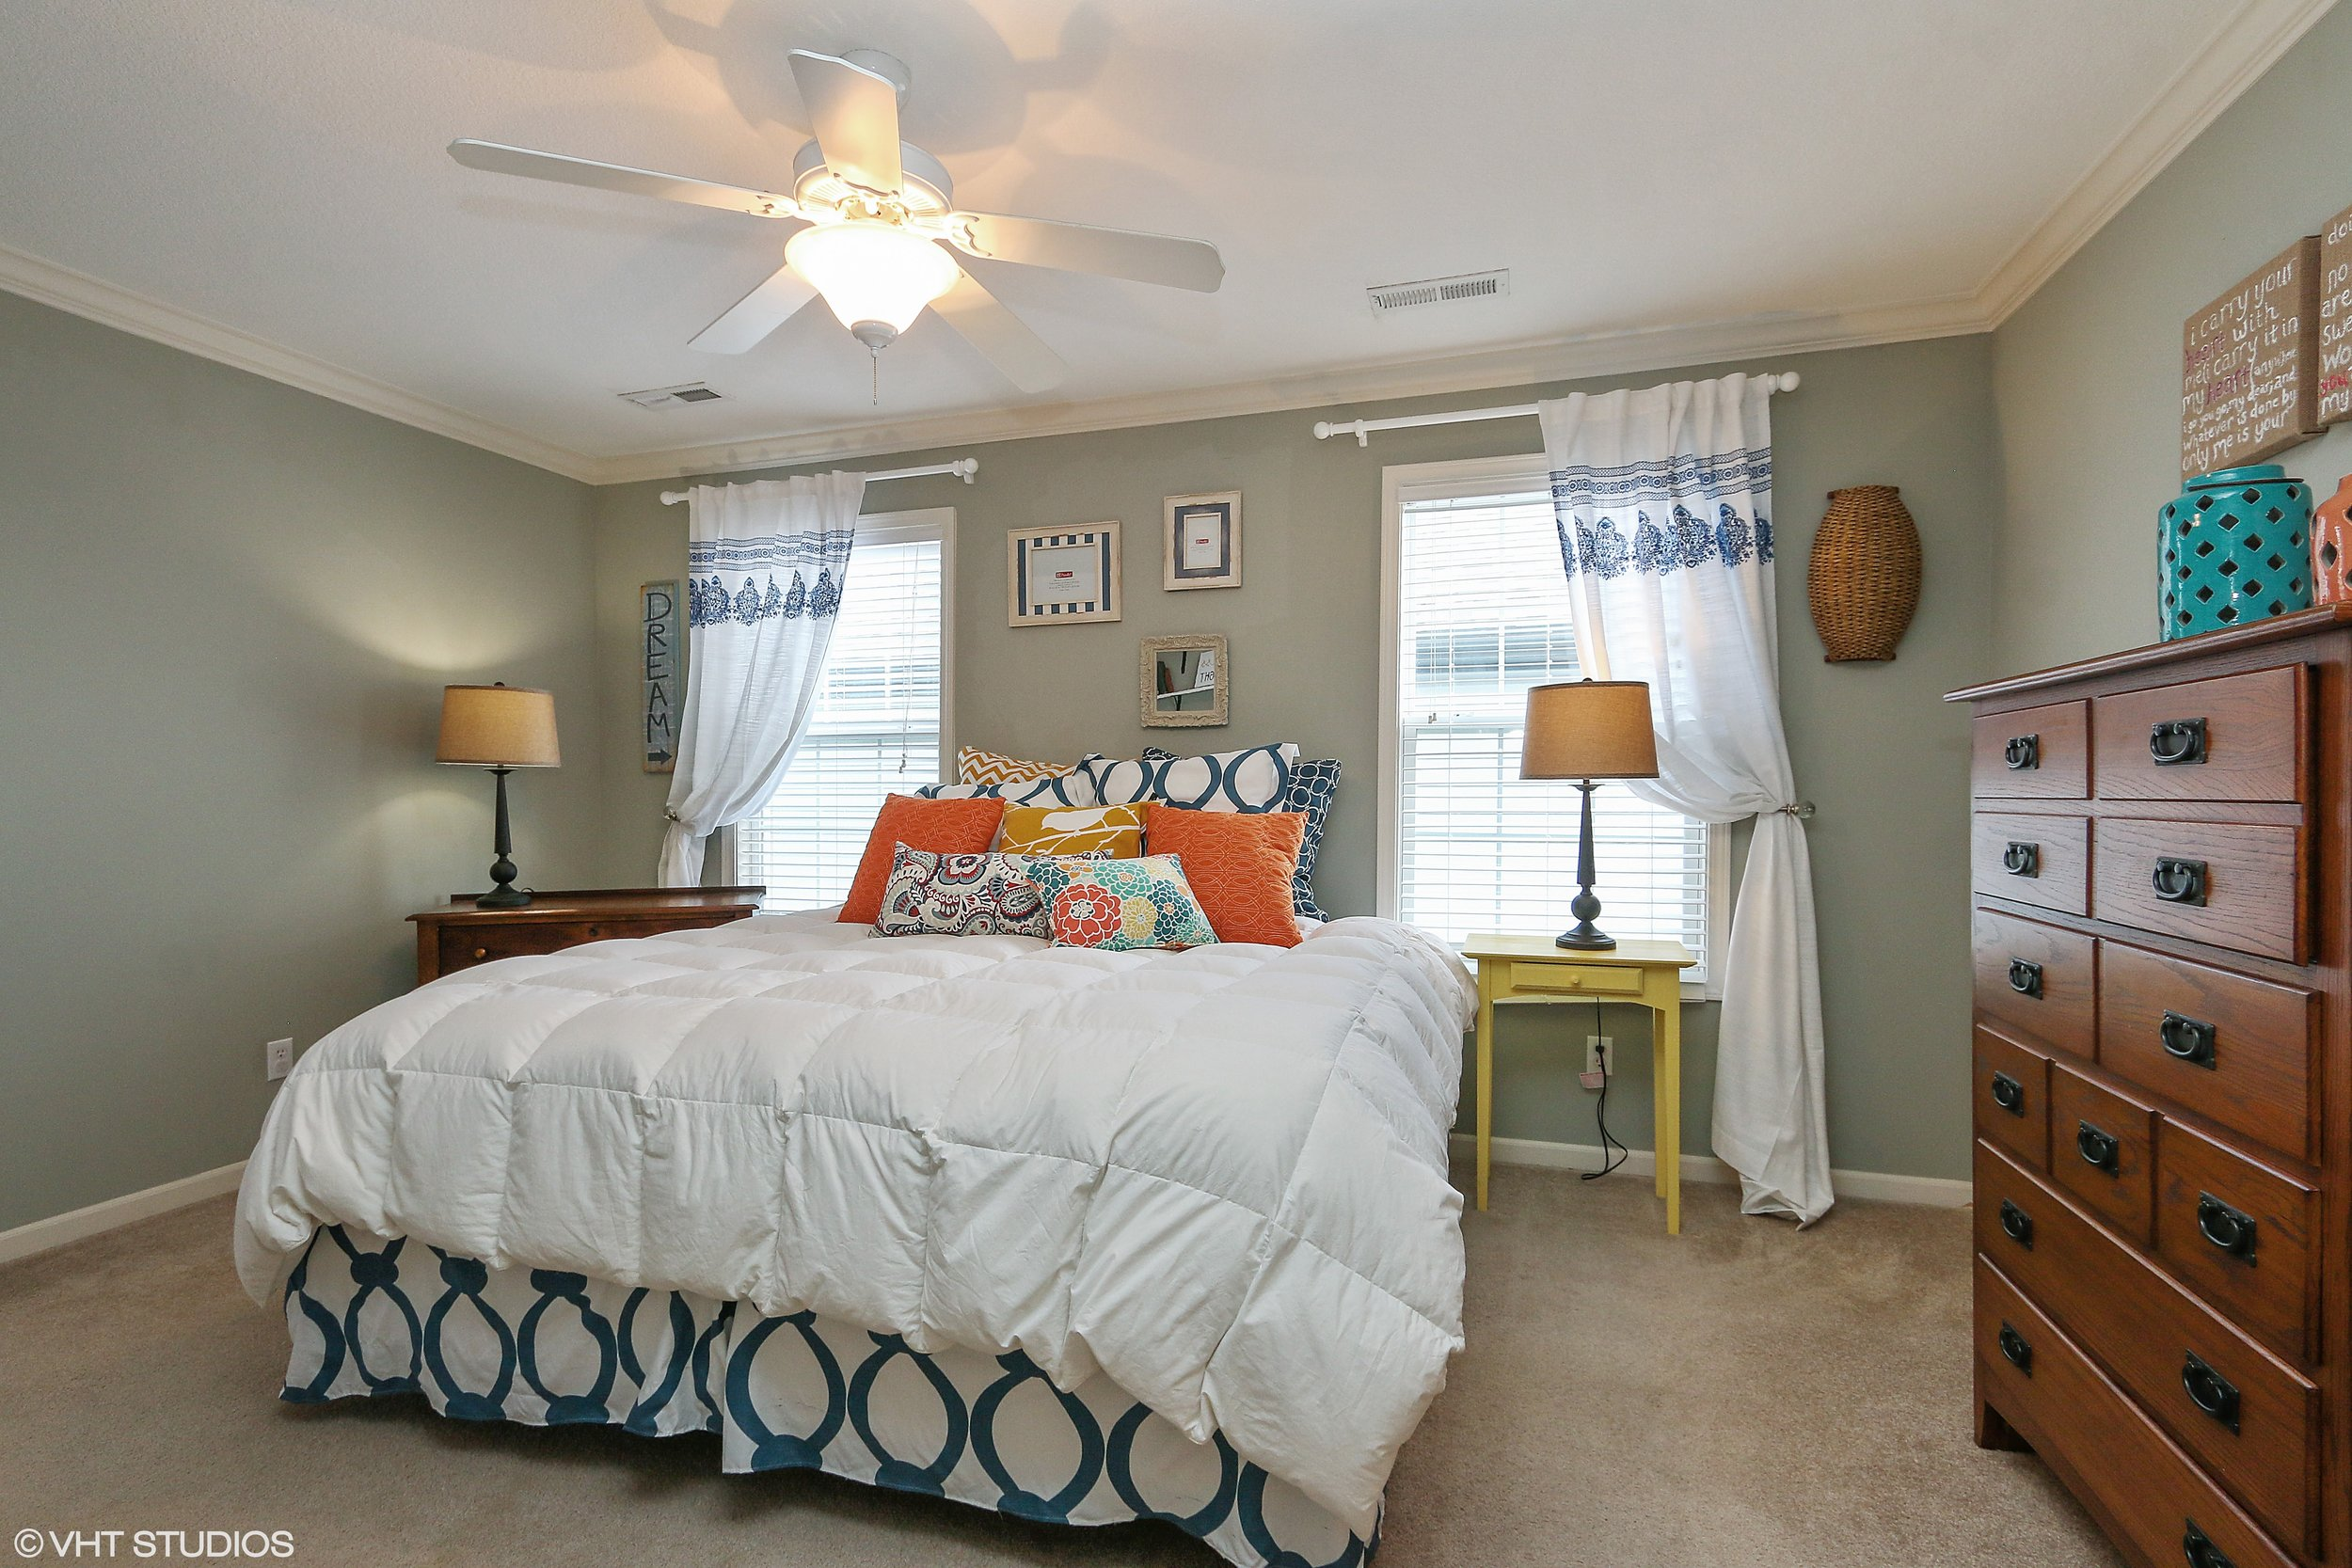 14_3336SWArena_178_MasterBedroom_HiRes.jpg